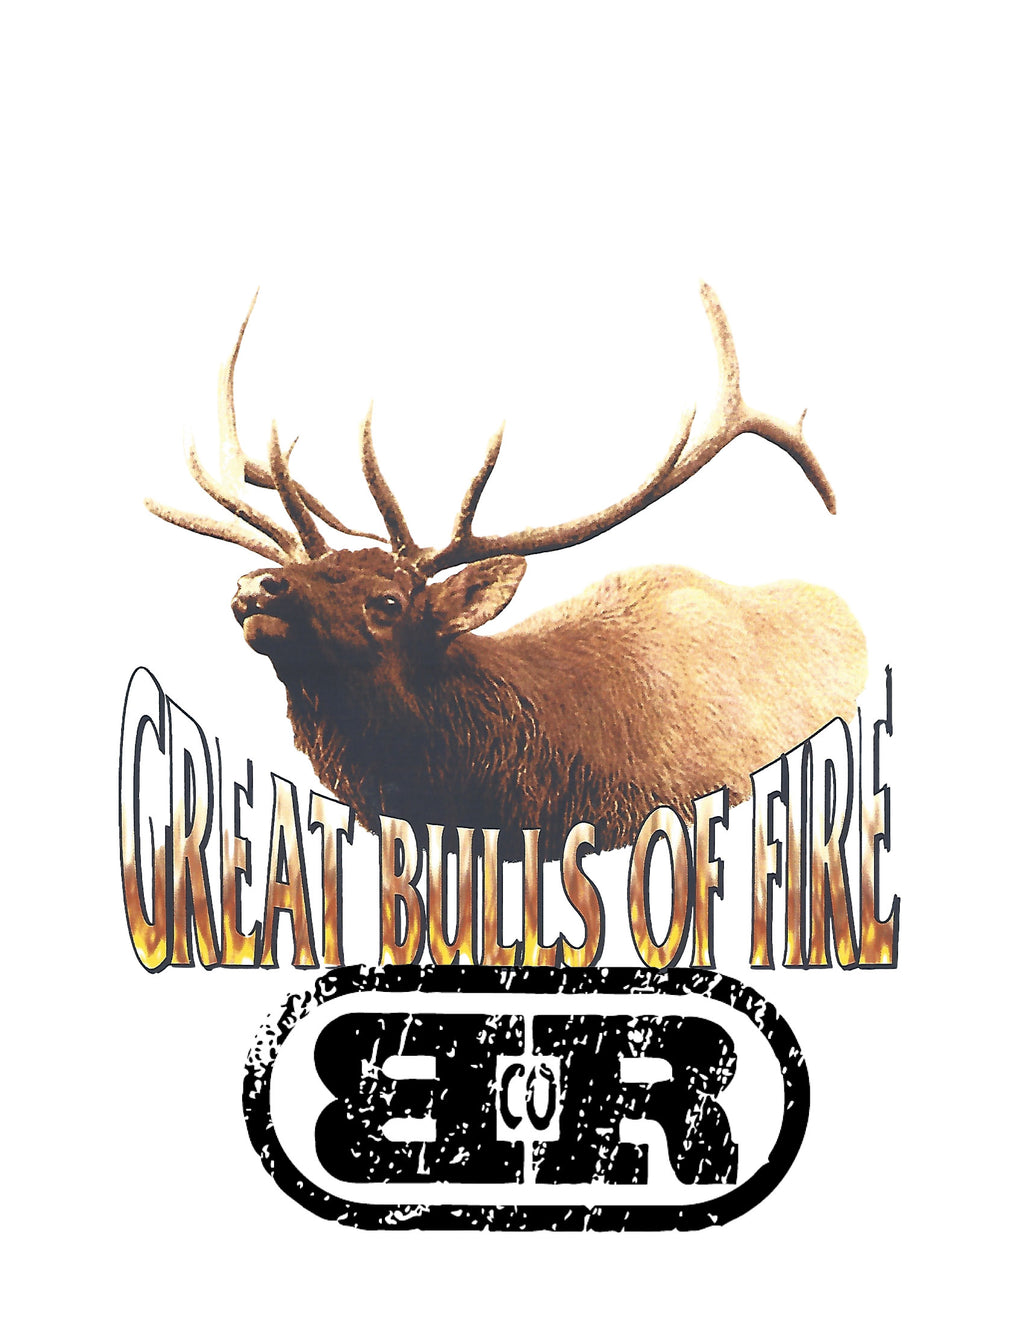 Classic Rock Great Bulls of Fire